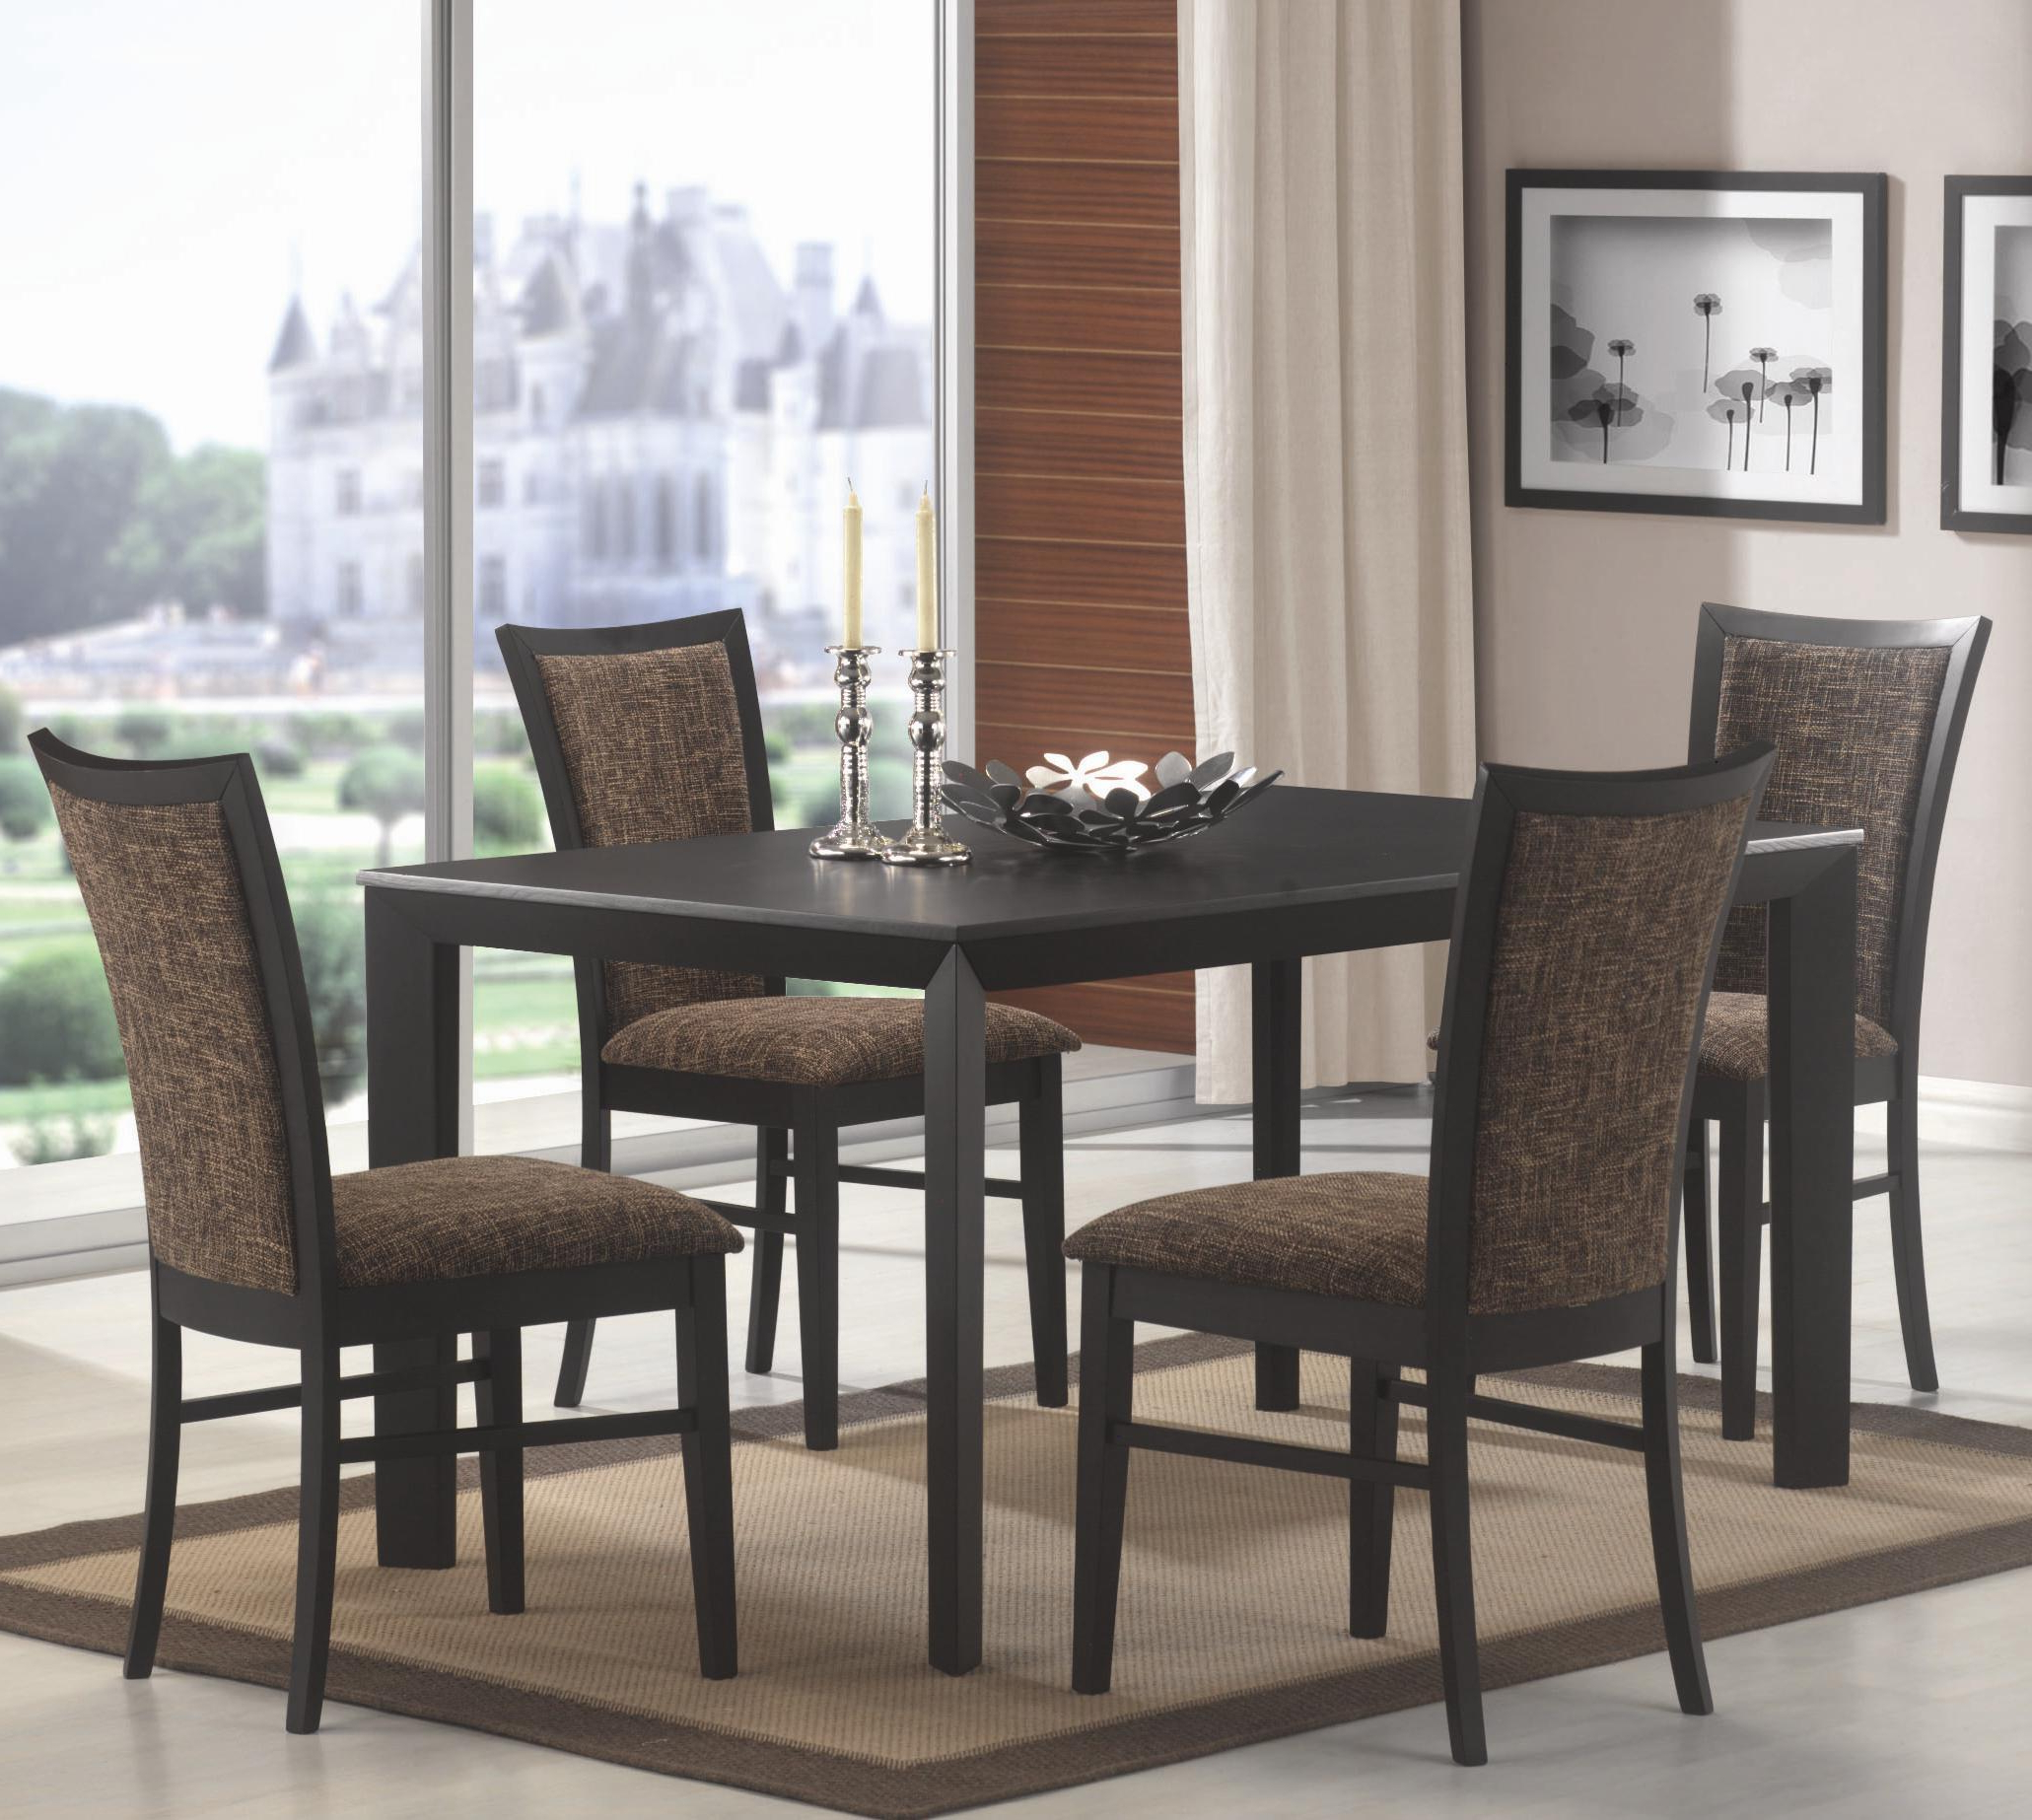 Anette 3 Piece Counter Height Dining Sets With Well Liked Santa Clara Furniture Store, San Jose Furniture Store, Sunnyvale (View 20 of 25)